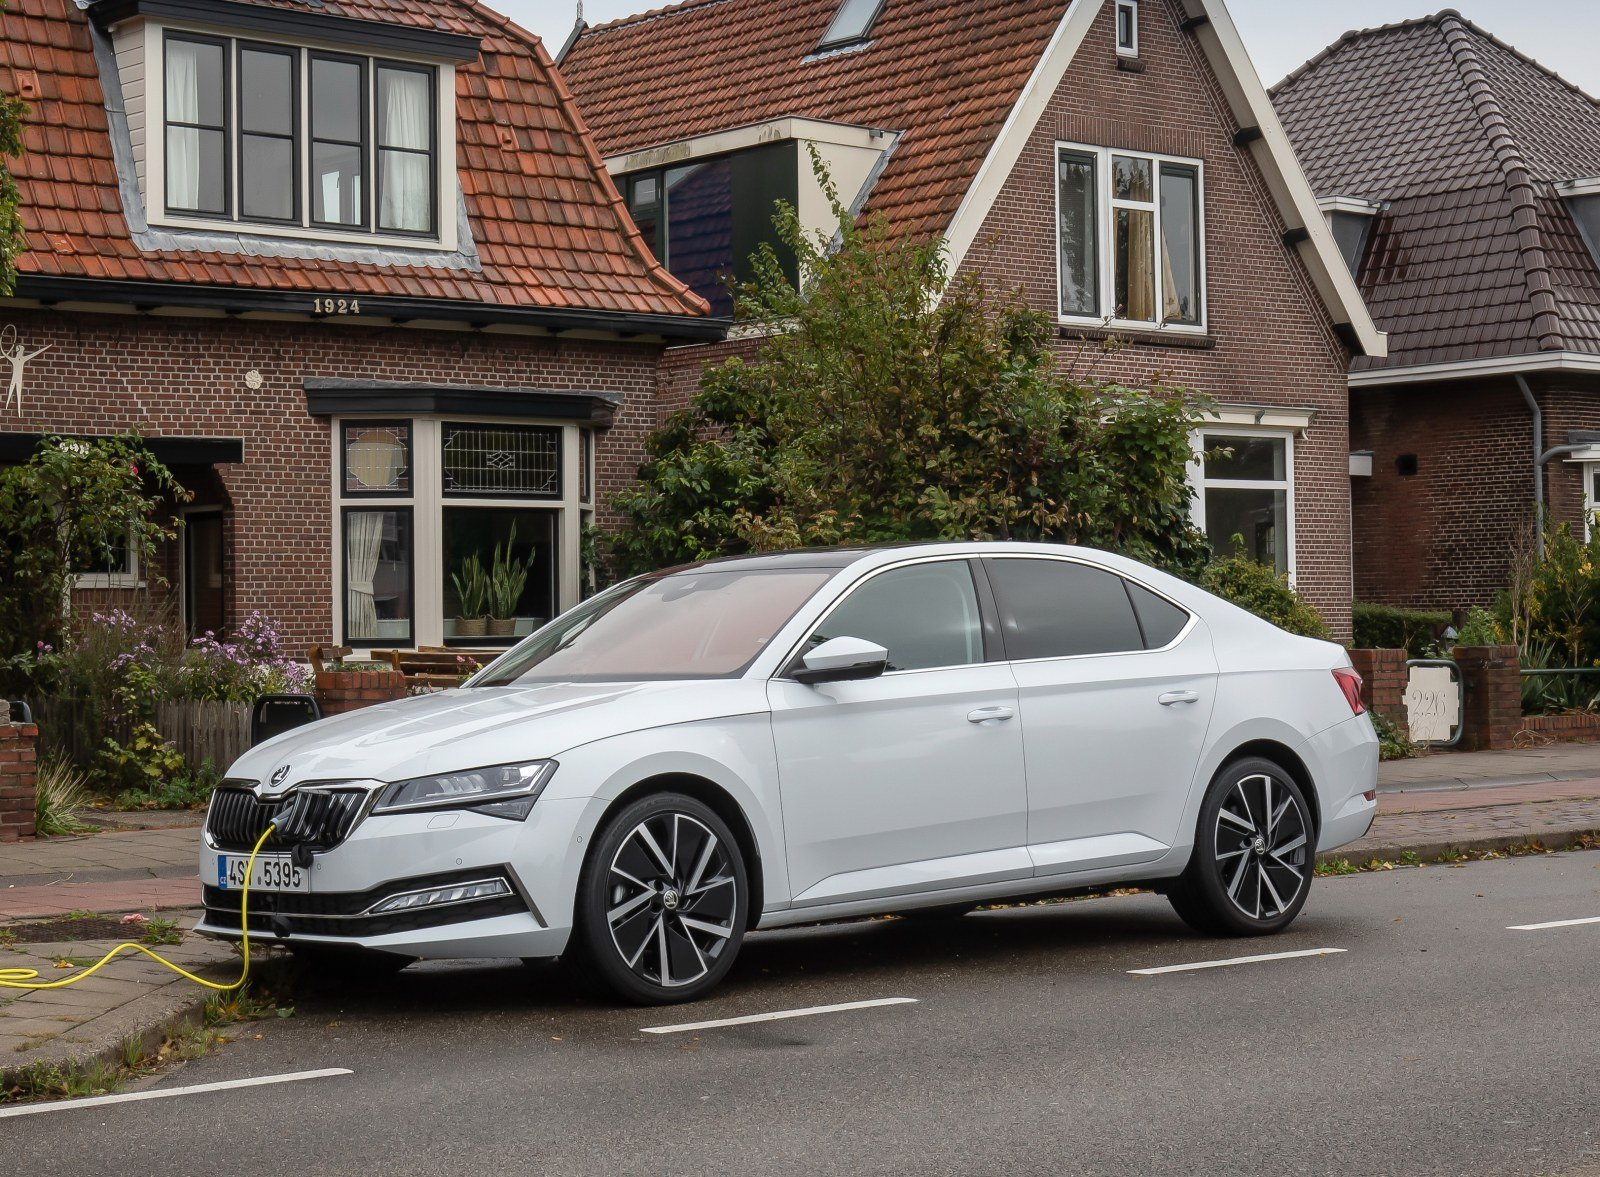 skoda superb iv hybryda plug-in 2020